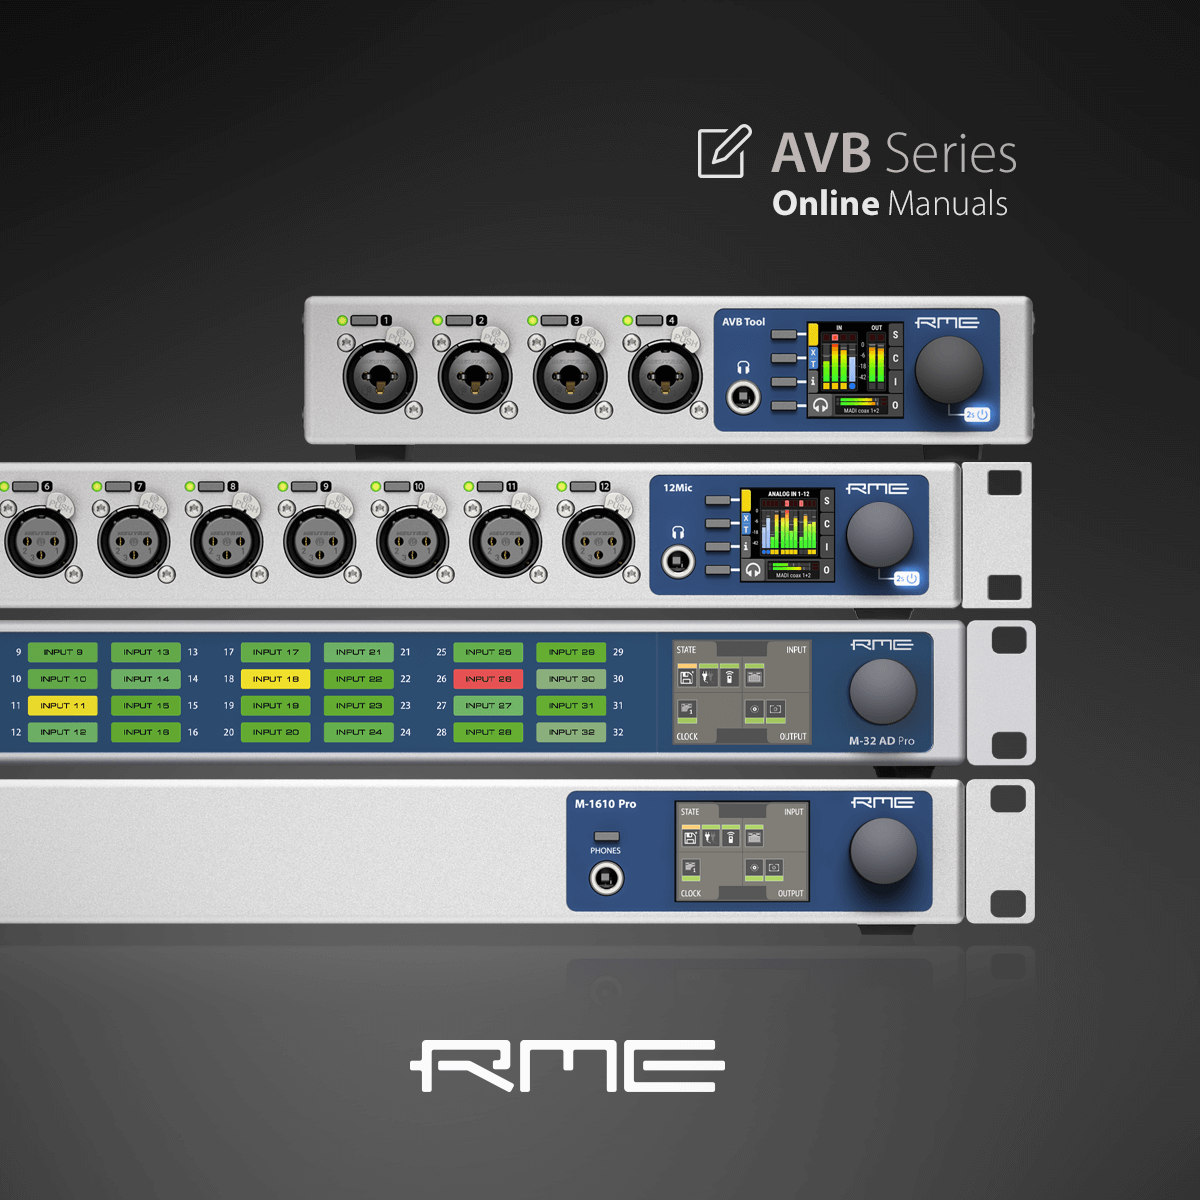 AVB Series online user guides